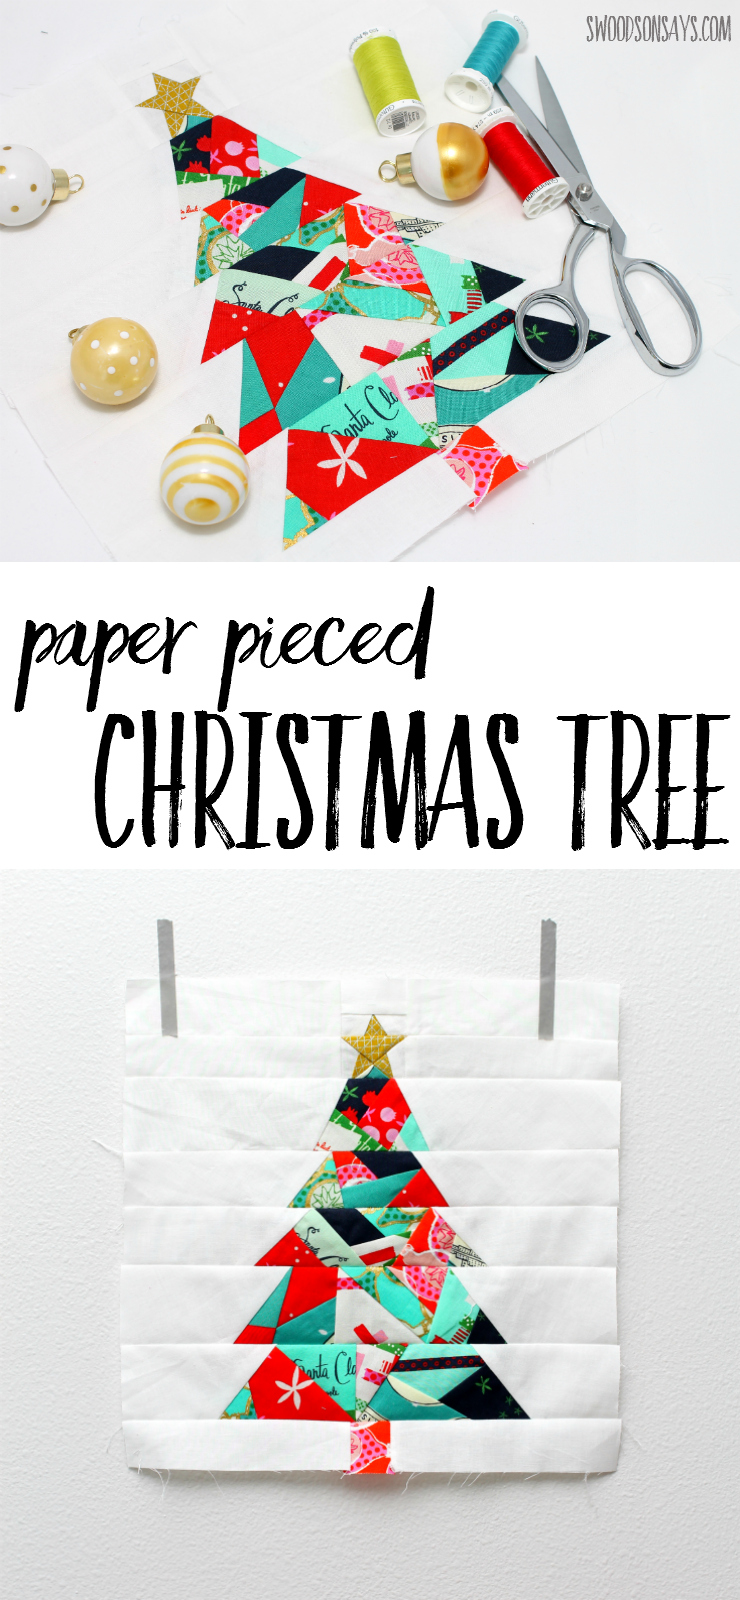 Check out this paper pieced Christmas tree! A modern Christmas quilt sewing pattern, it's a great first paper piecing pattern to try and uses up the smallest of scraps. Great for: christmas gifts to sew - christmas quilts - christmas paper piecing patterns - Christmas trees to sew.